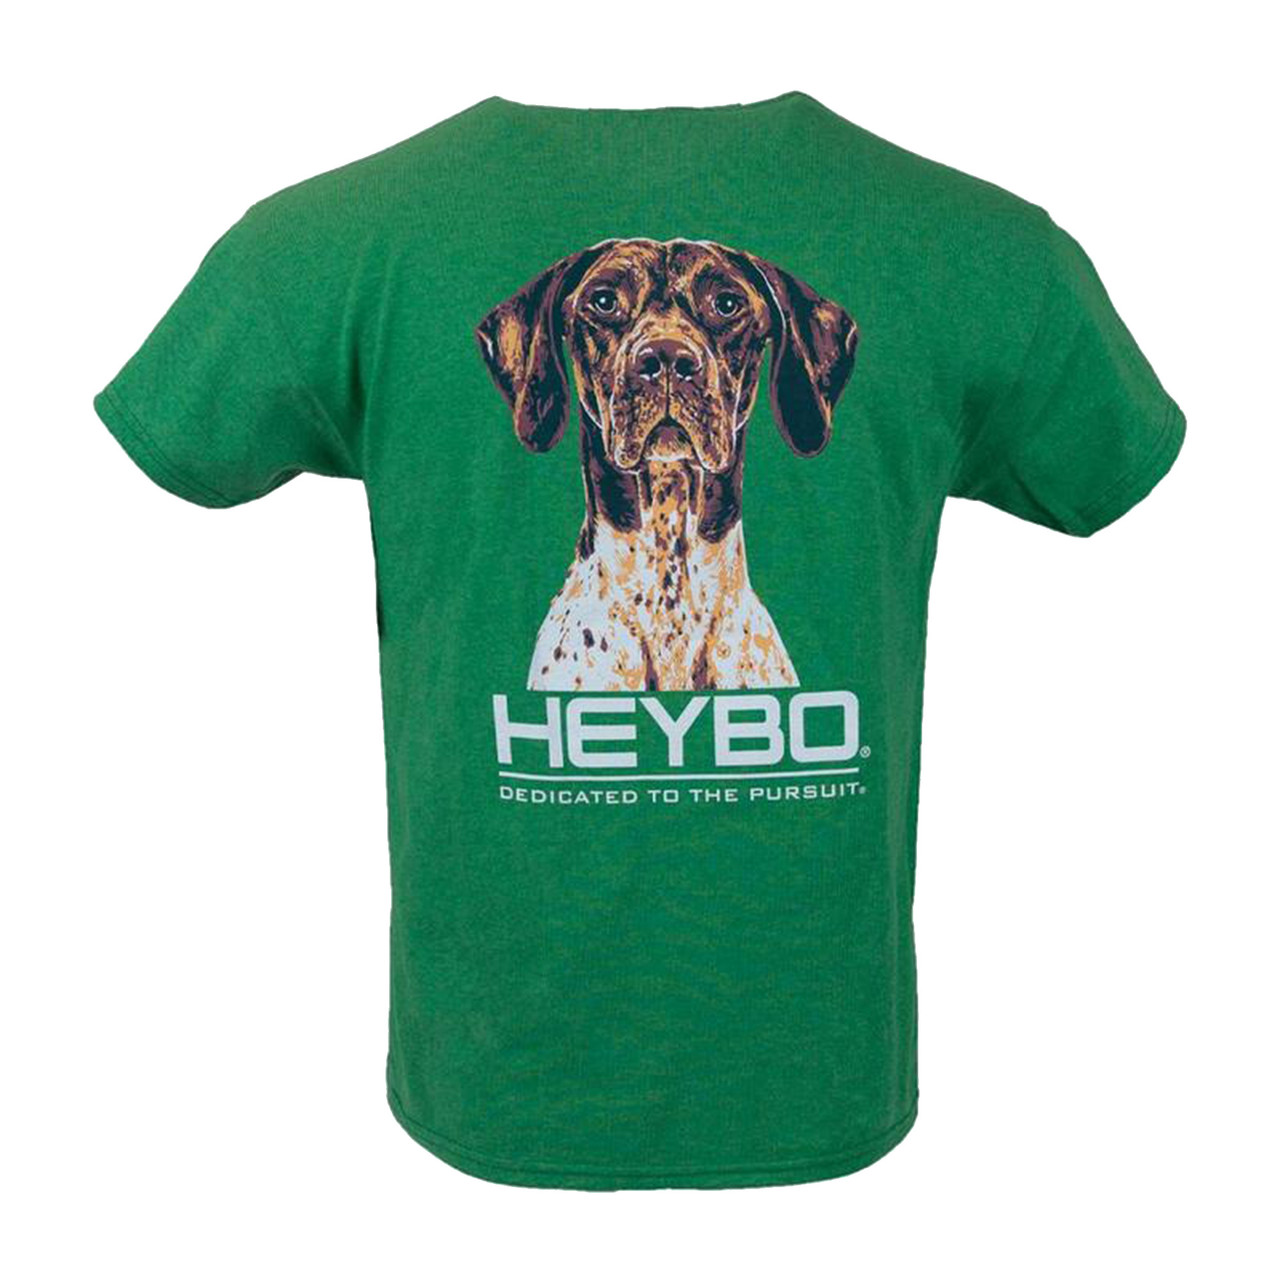 b4334820b Heybo Outdoors German Youth Shorthaired Pointer Youth Short Sleeve T-shirt  ...